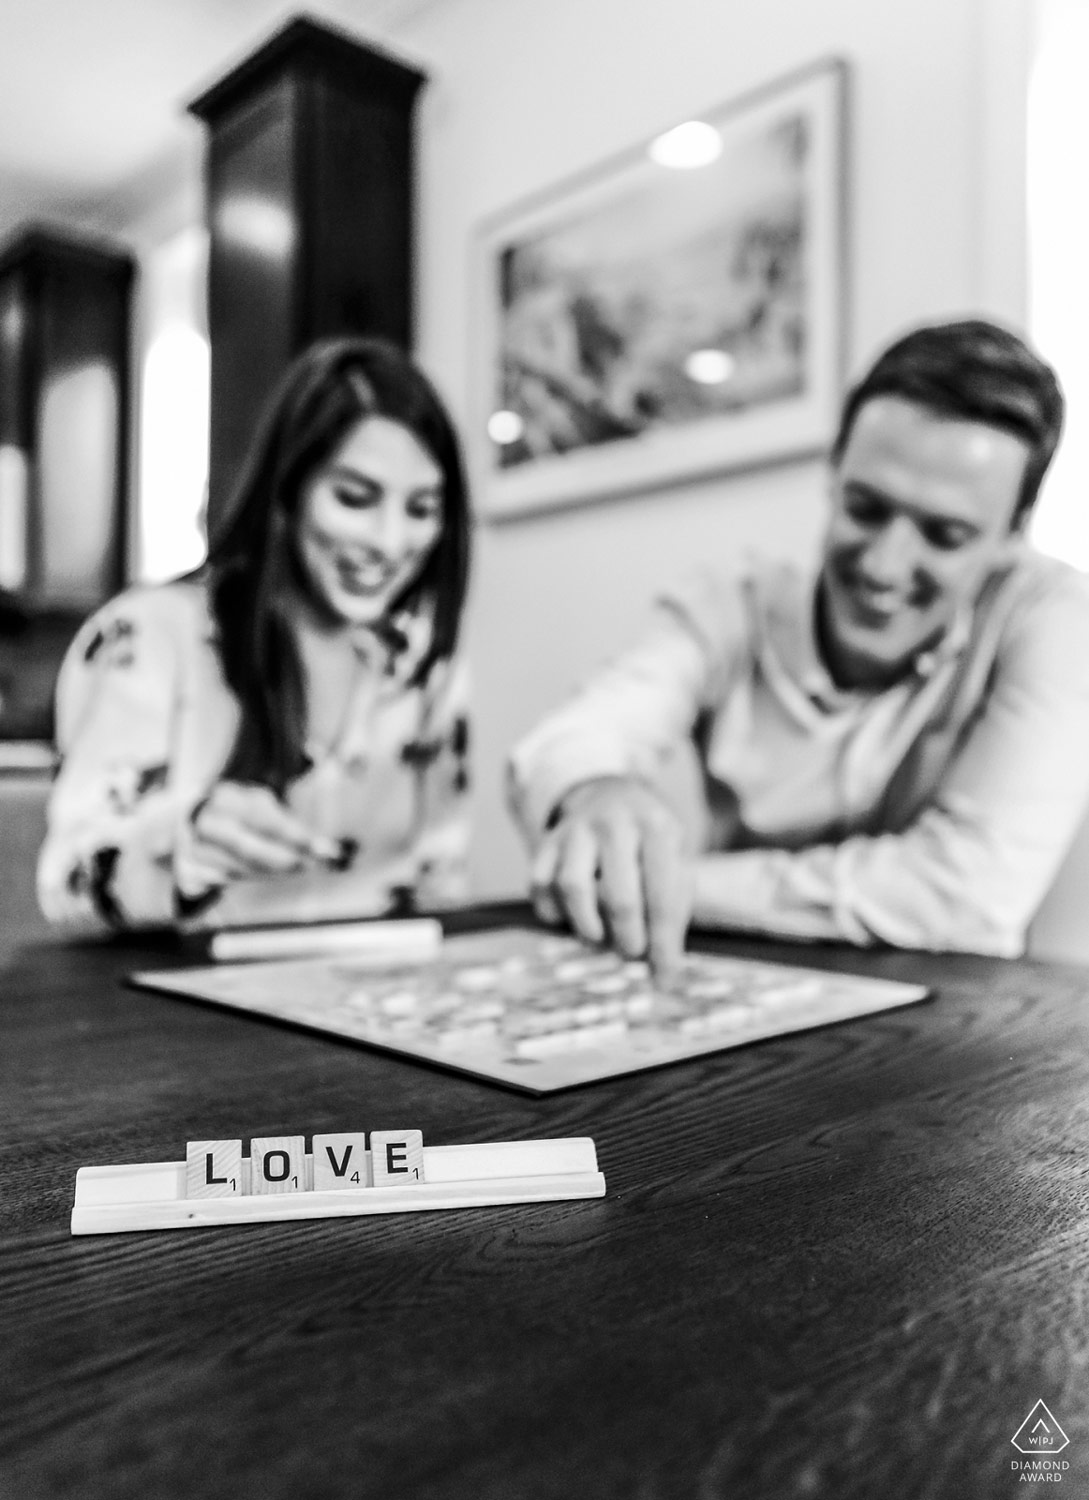 chicago-lincoln-park-engagement-session-ruthie-hauge-photography-wedding-photographer-madison-wi-scrabble-love.jpg